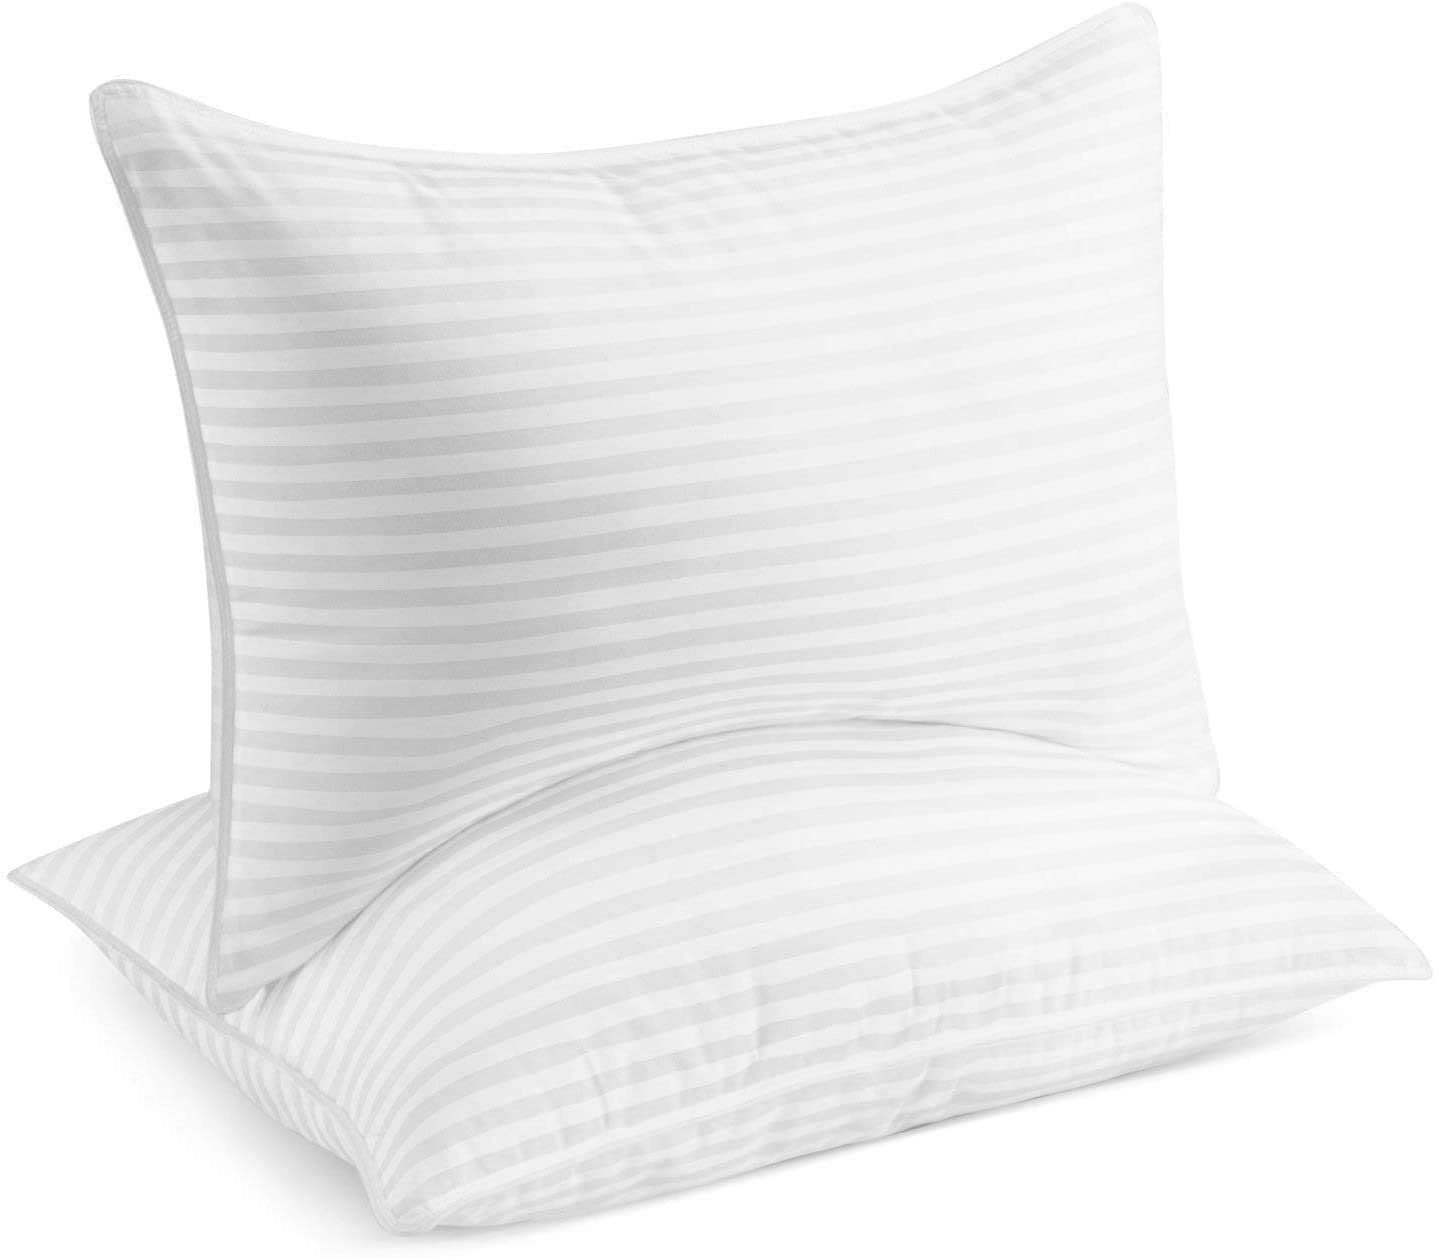 Alleviate your neck pain with one of these orthopedic pillows and get some quality sleep.